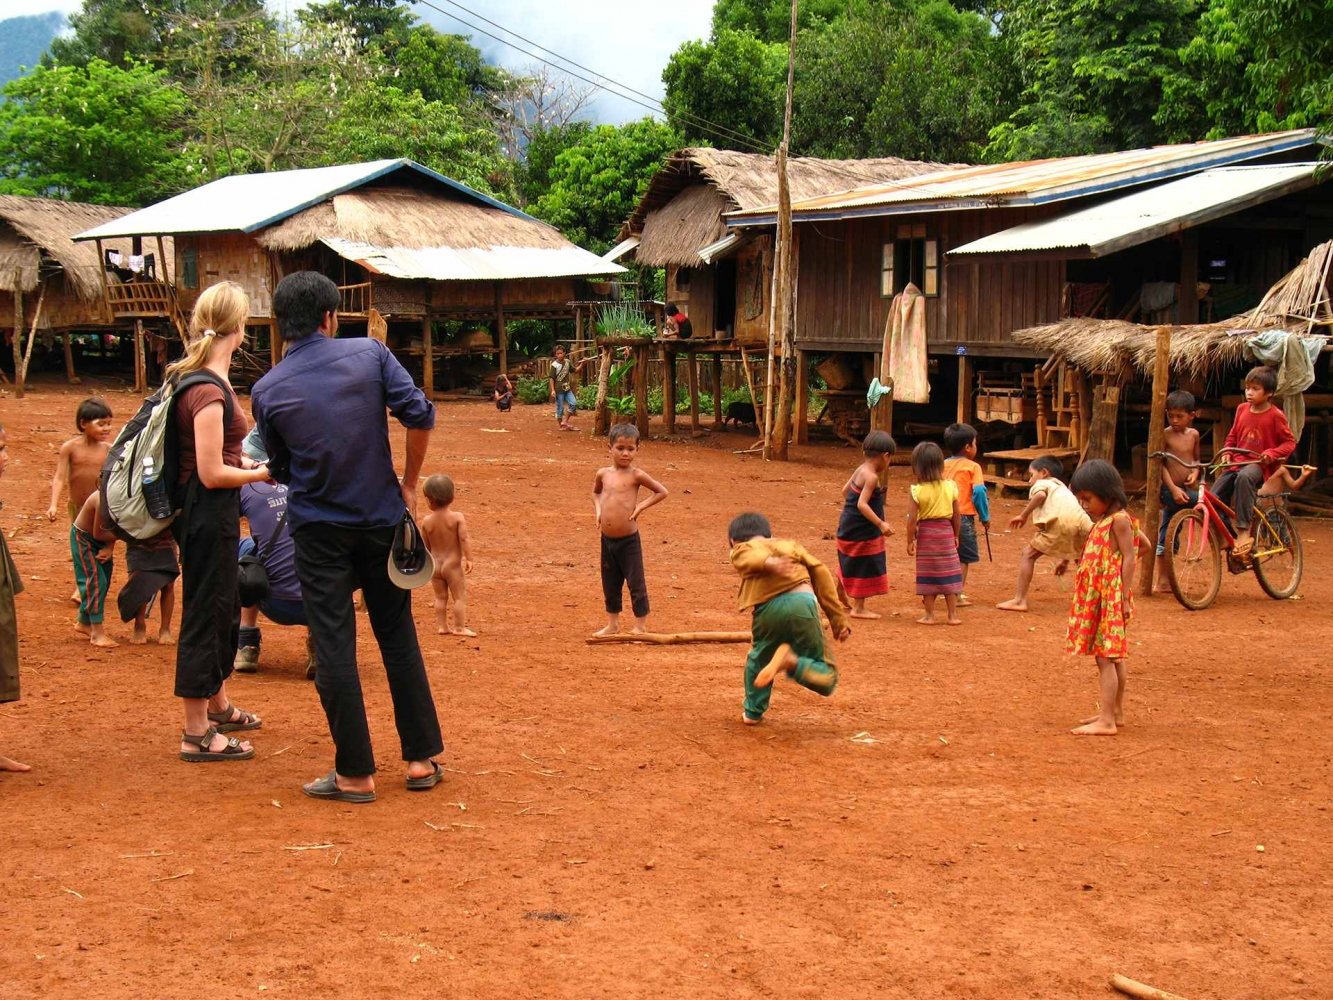 Kids playing at lao traditional village